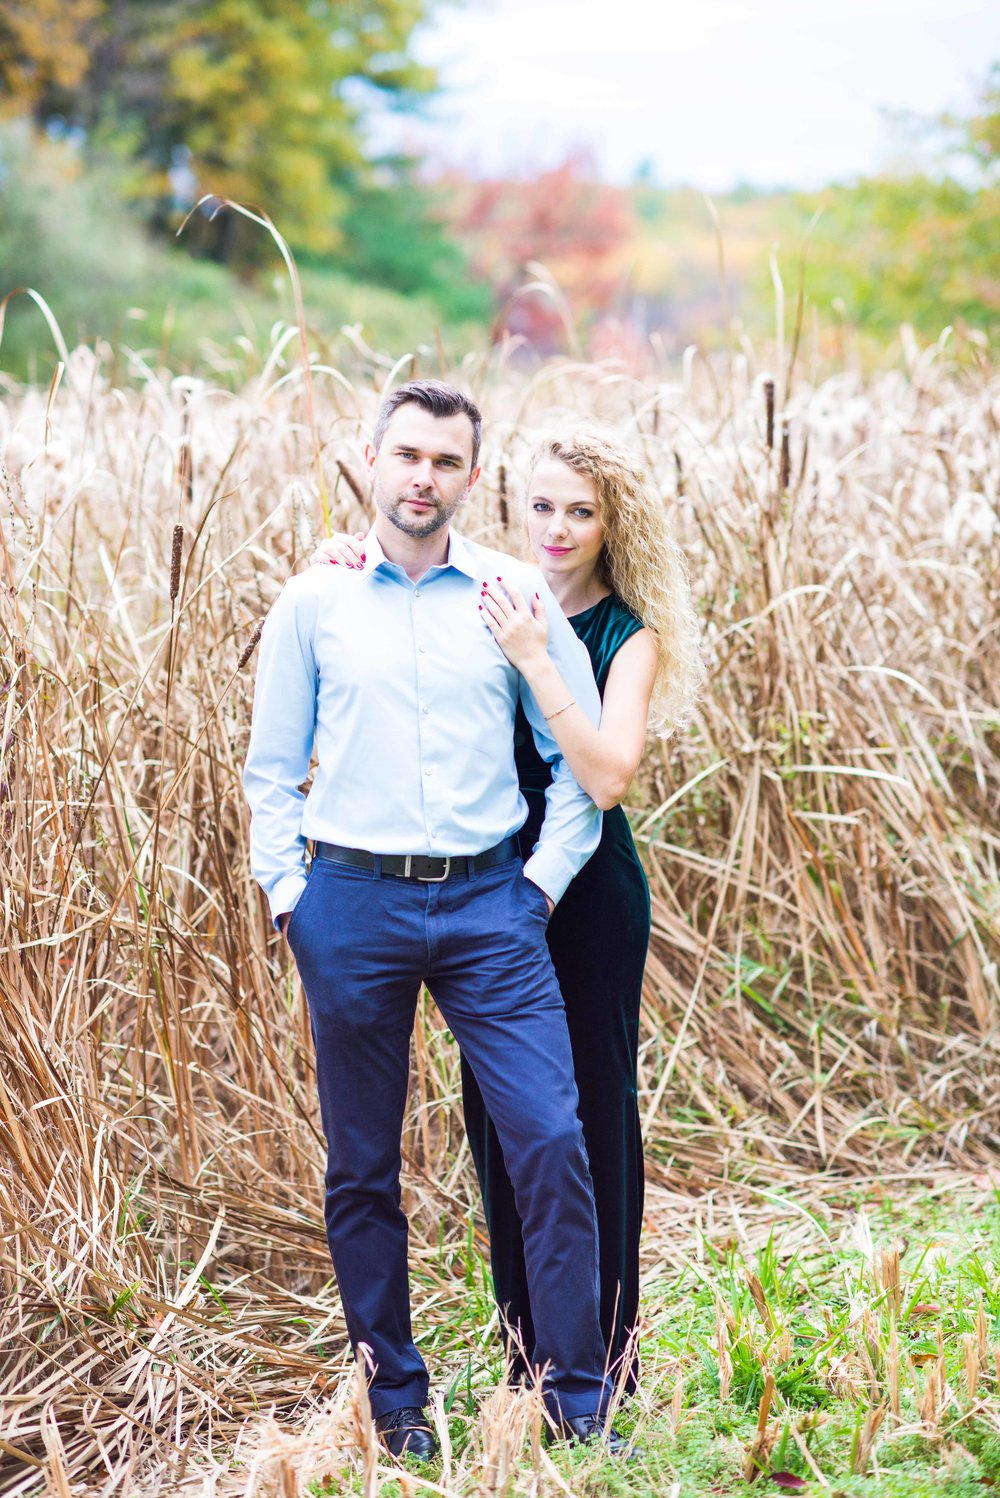 Engagement Photo Session in Wellesley College | Boston Wedding Photographer | Iryna's Photography